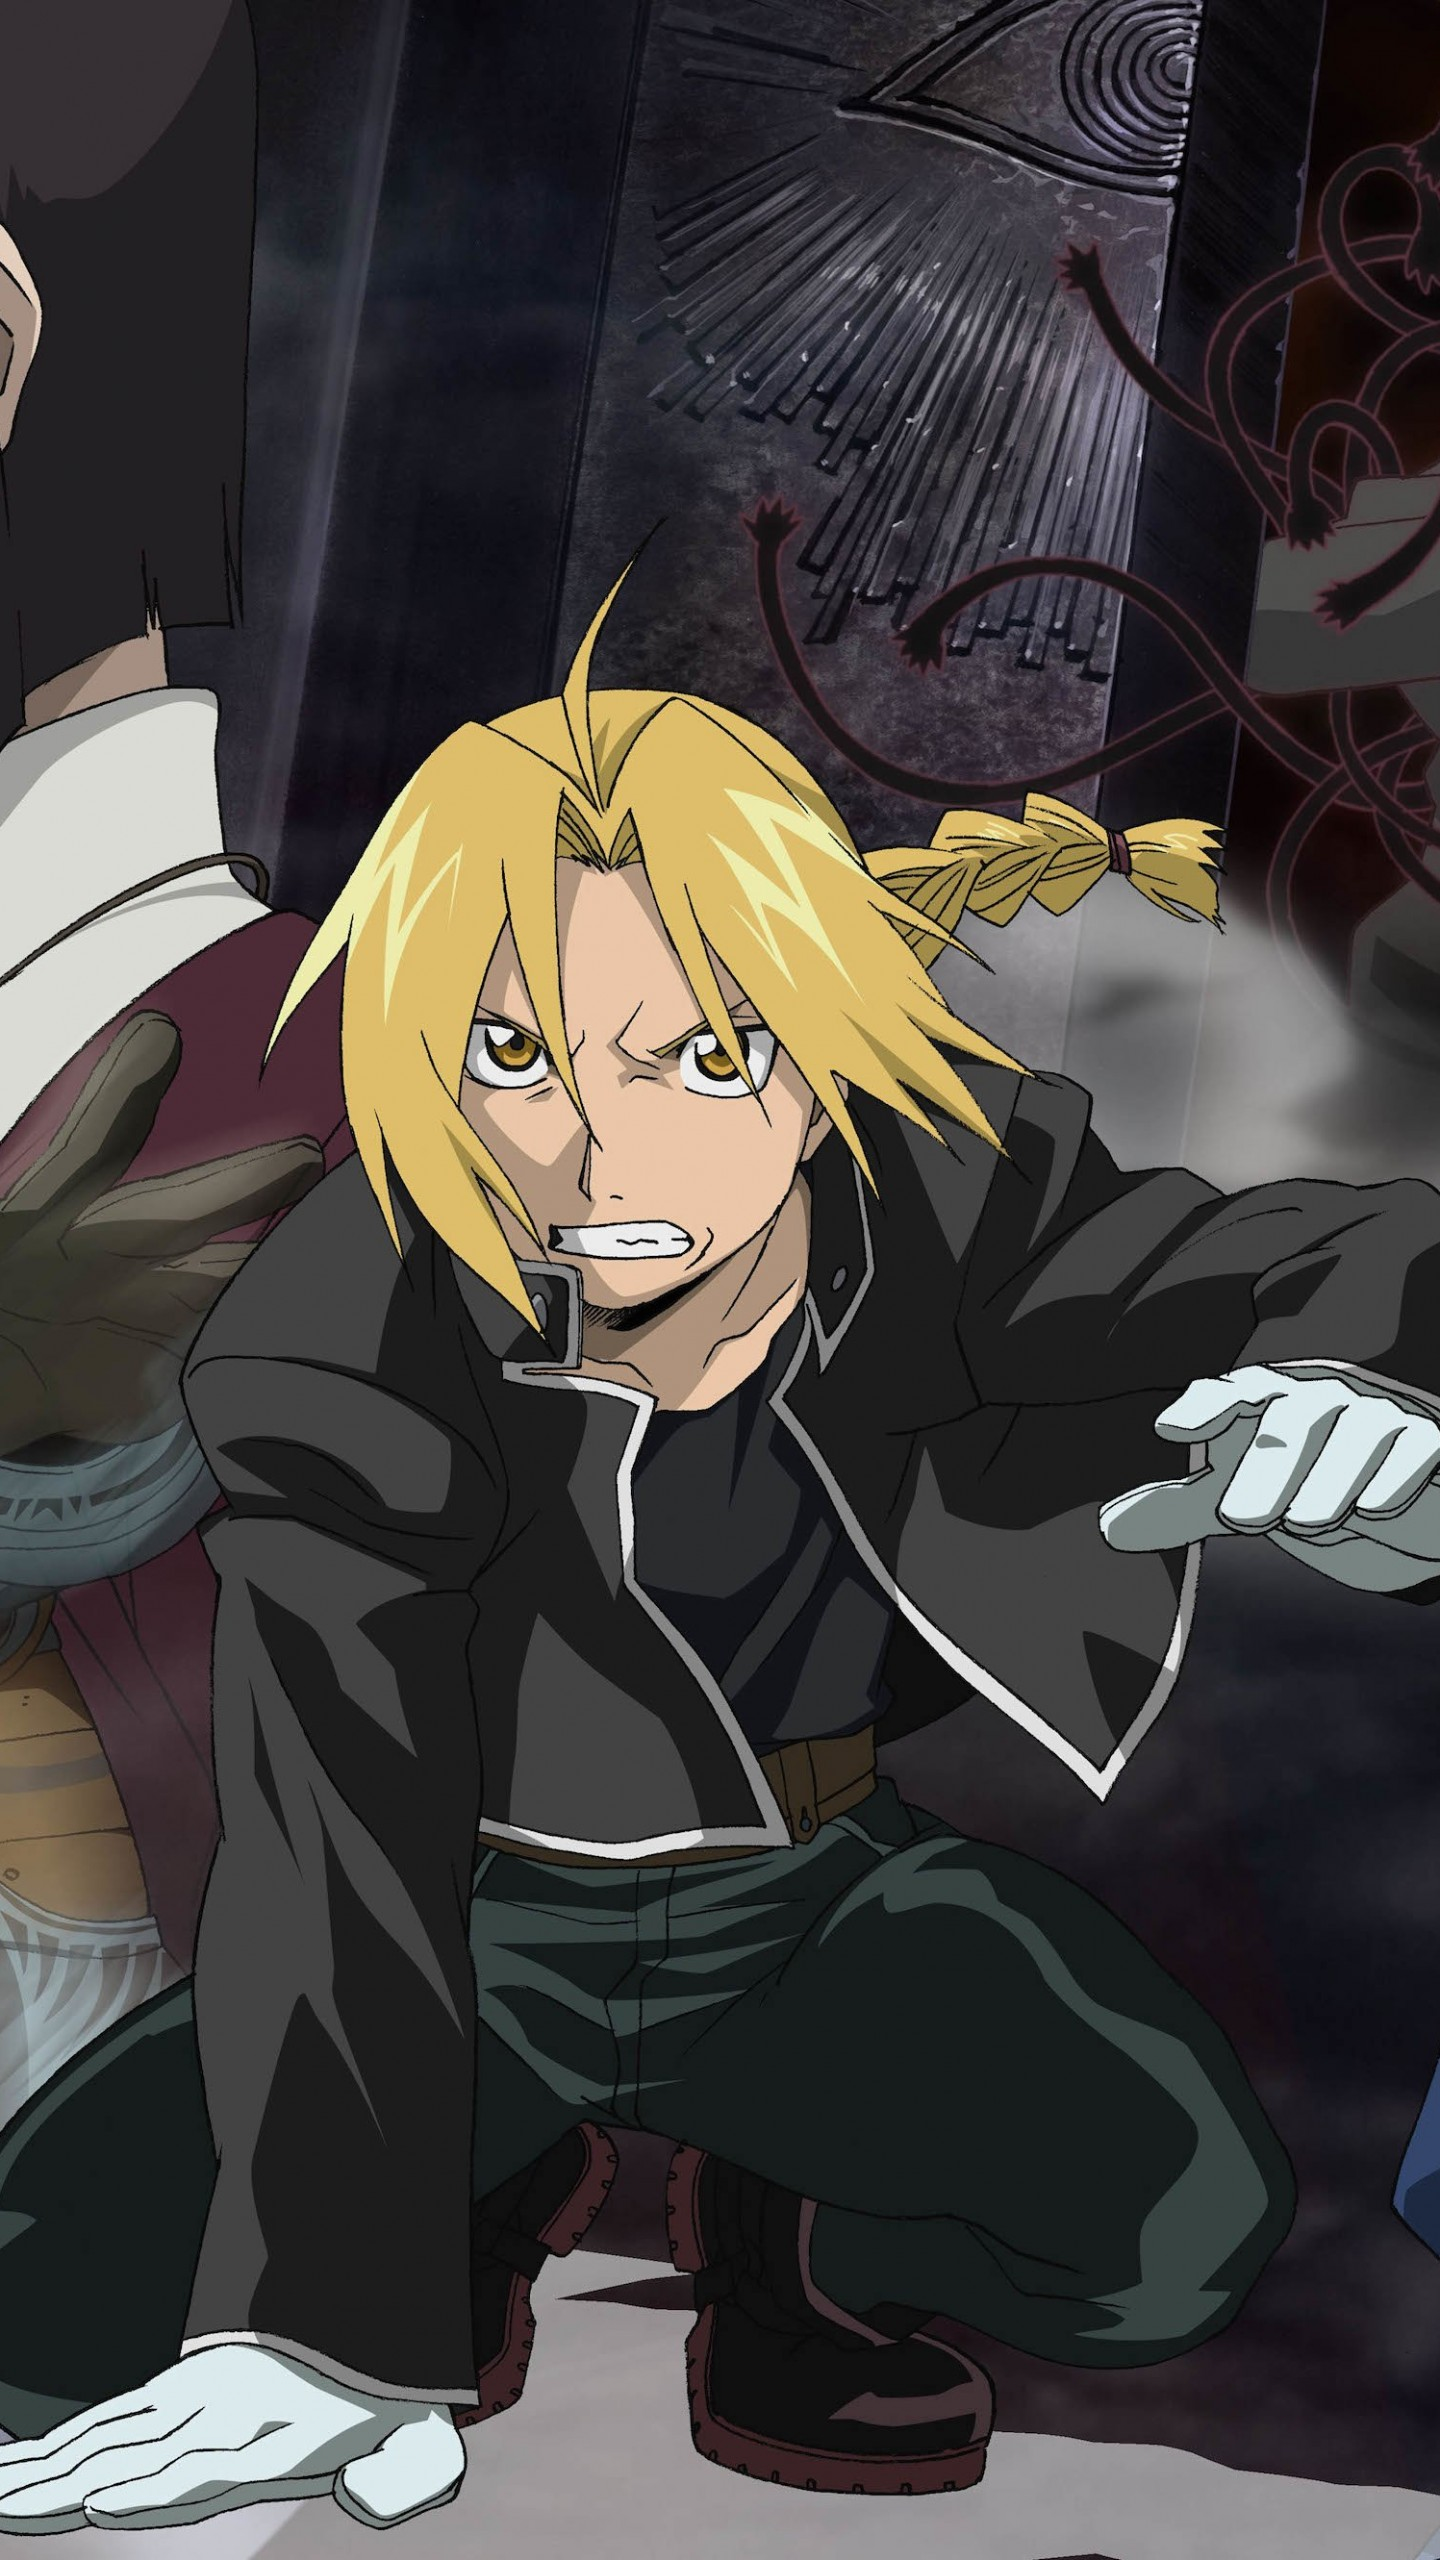 Fullmetal Alchemist Wallpaper for SAMSUNG Galaxy Note 4